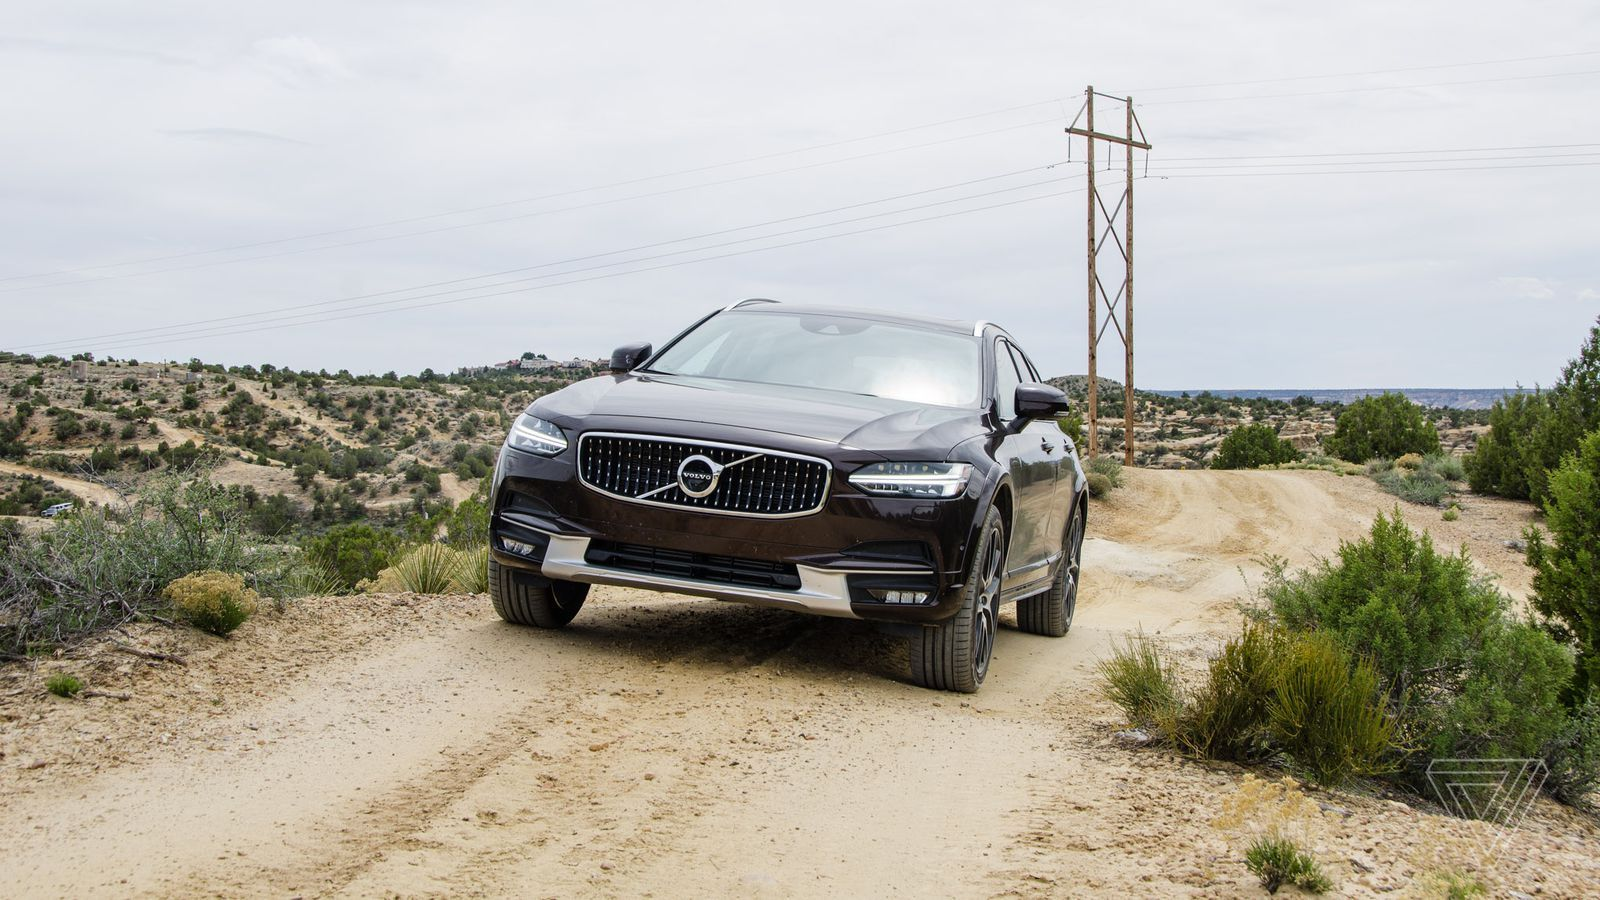 The wagon is back: The Volvo V90 Cross Country drives itself through the desert